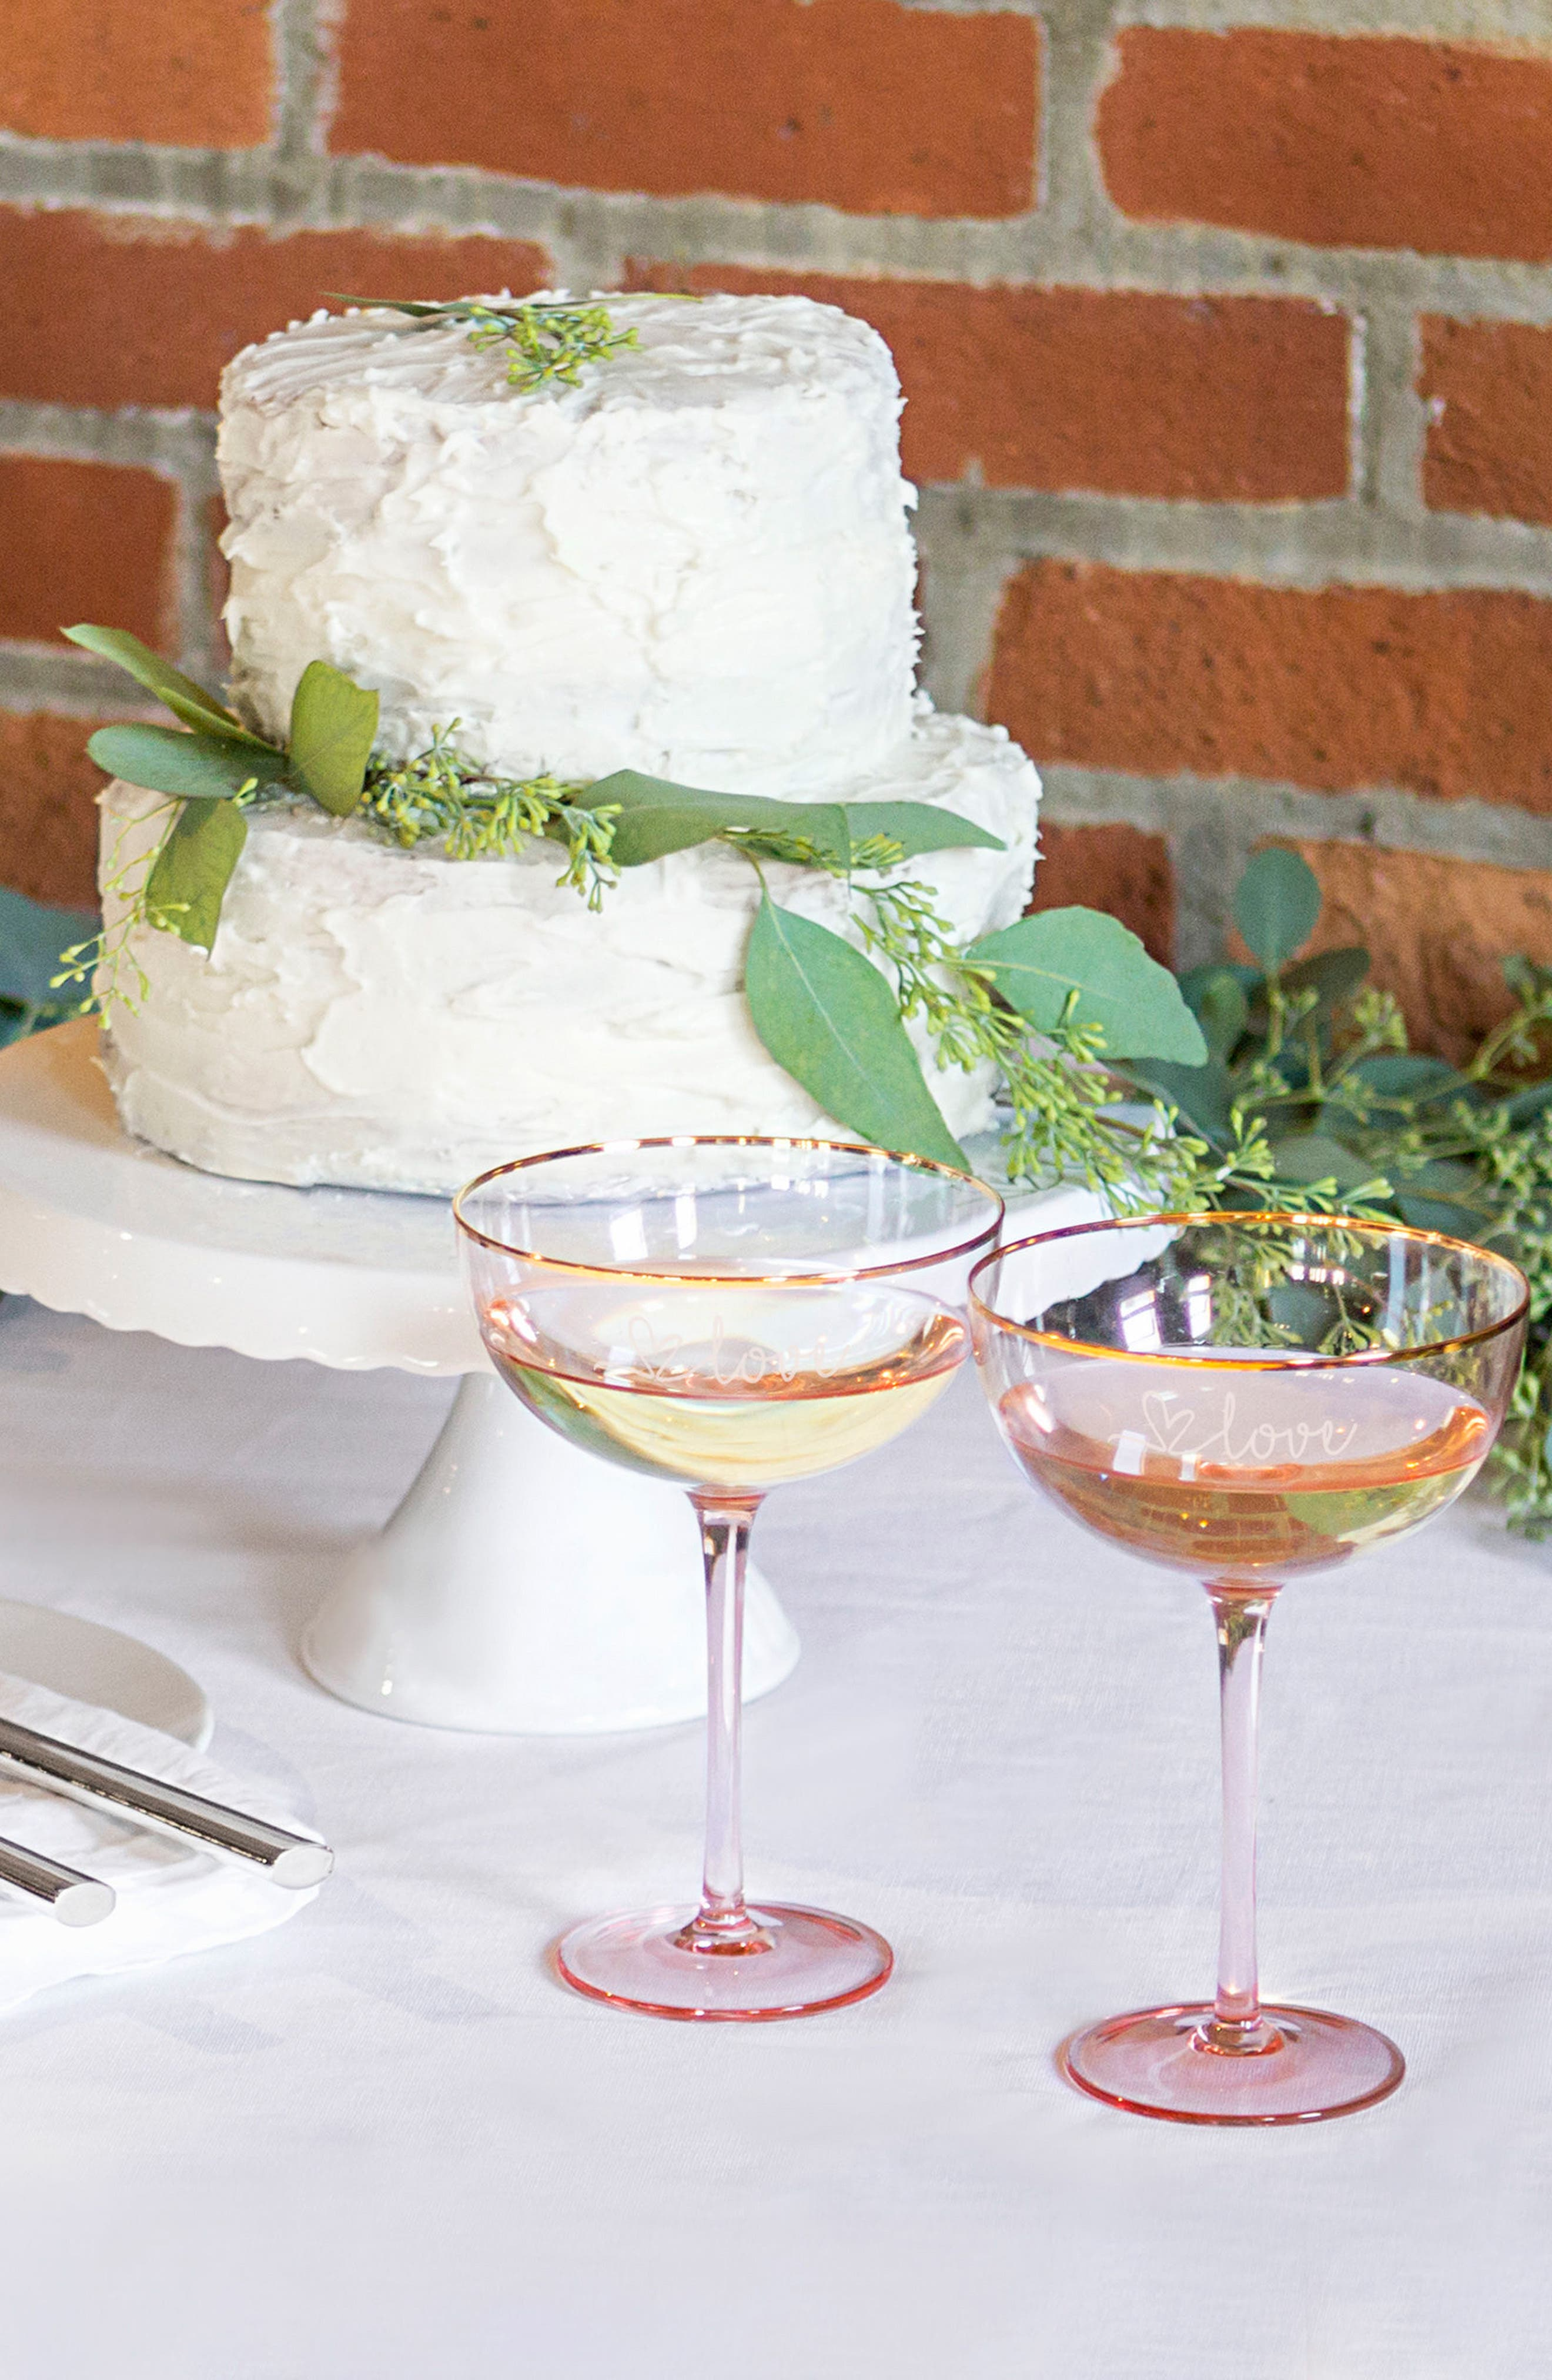 Love Champagne Coupes and Cake Serving Set,                             Alternate thumbnail 2, color,                             Blush